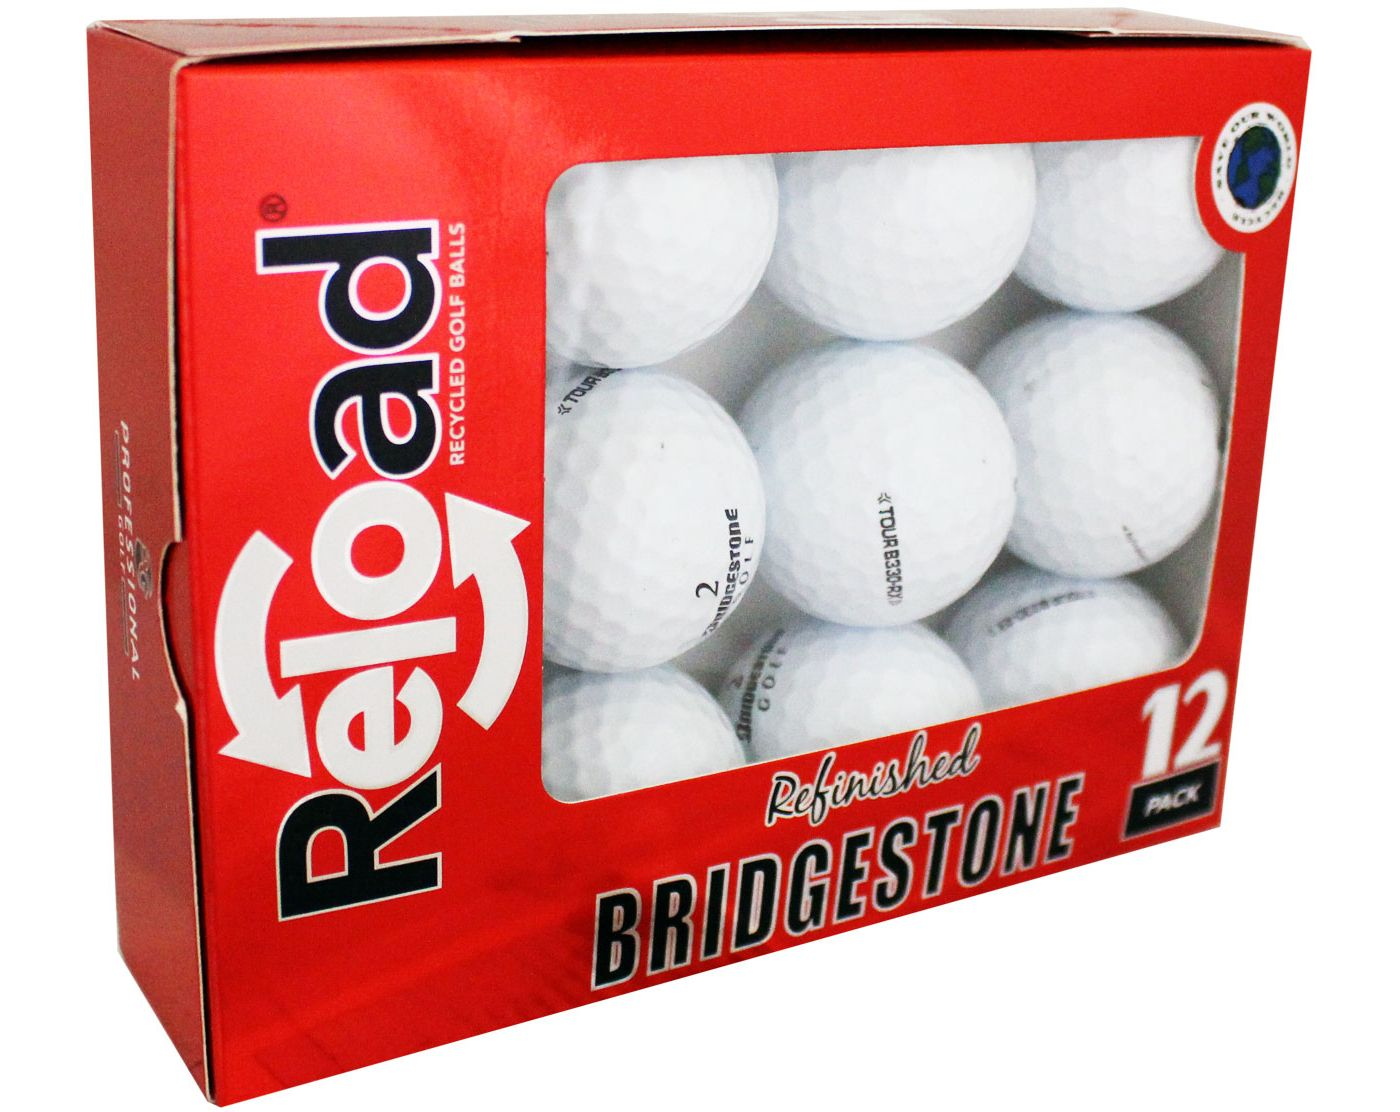 Refurbished Bridgestone Tour B330 Golf Balls